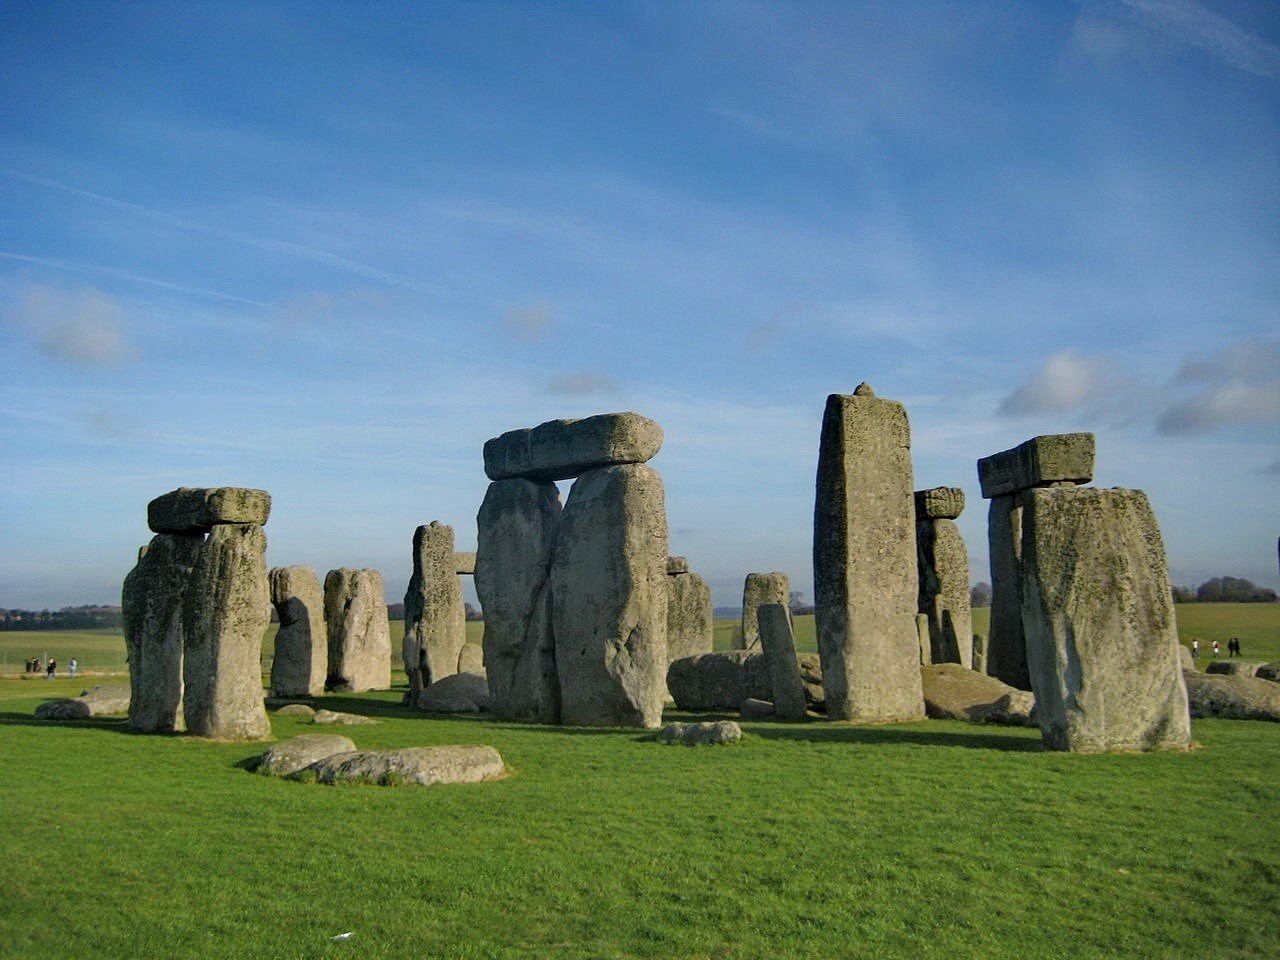 Stonehenge from a similar angle